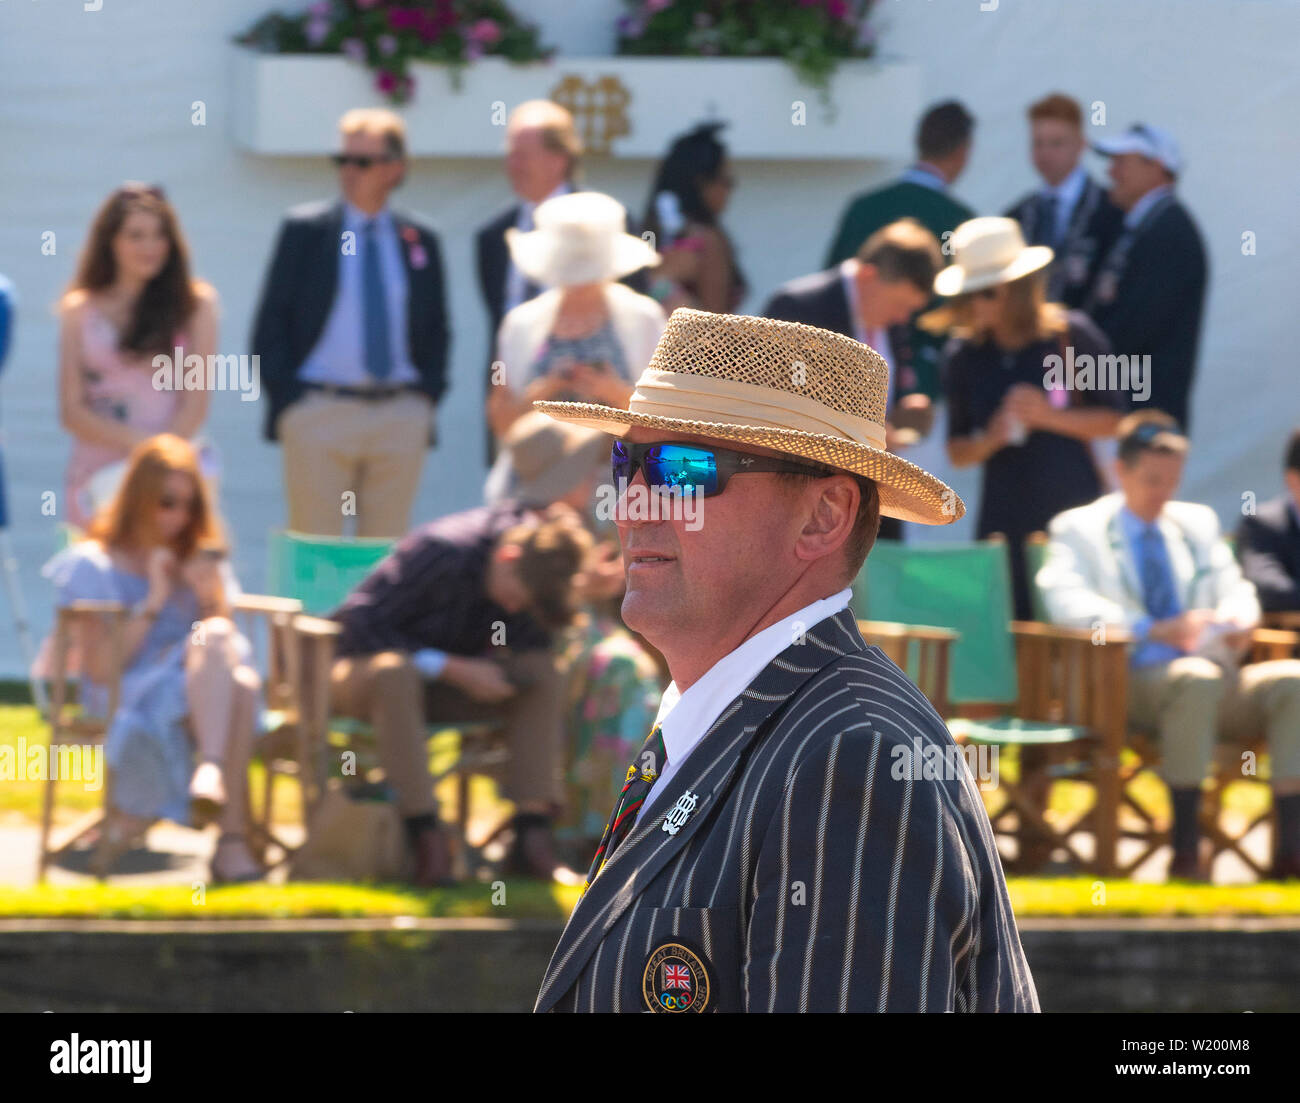 Henley on Thames, Berkshire, UK. 4th July, 2019. Henley Royal Regatta. Former Olympian and a  Henley Royal Regatta Umpire, Sir Matthew Pinsent ,standing in the umpires boat going past the spectators in the Stewards Enclosure to start the race. Credit Gary Blake/Alamy Live - Stock Image